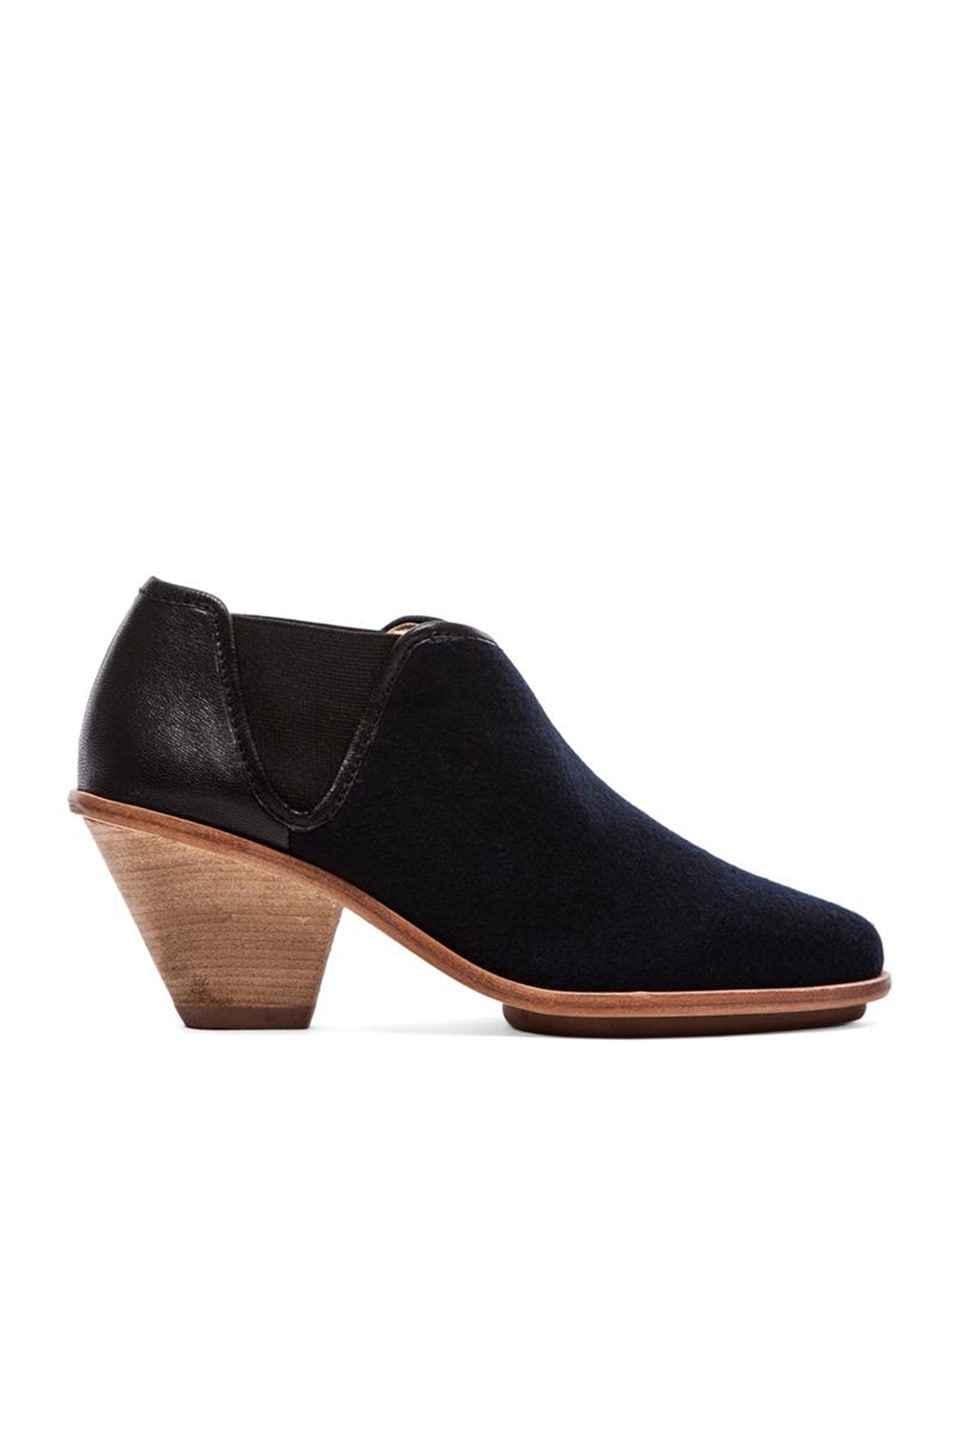 Matt Bernson Marlow Bootie in Black/Navy